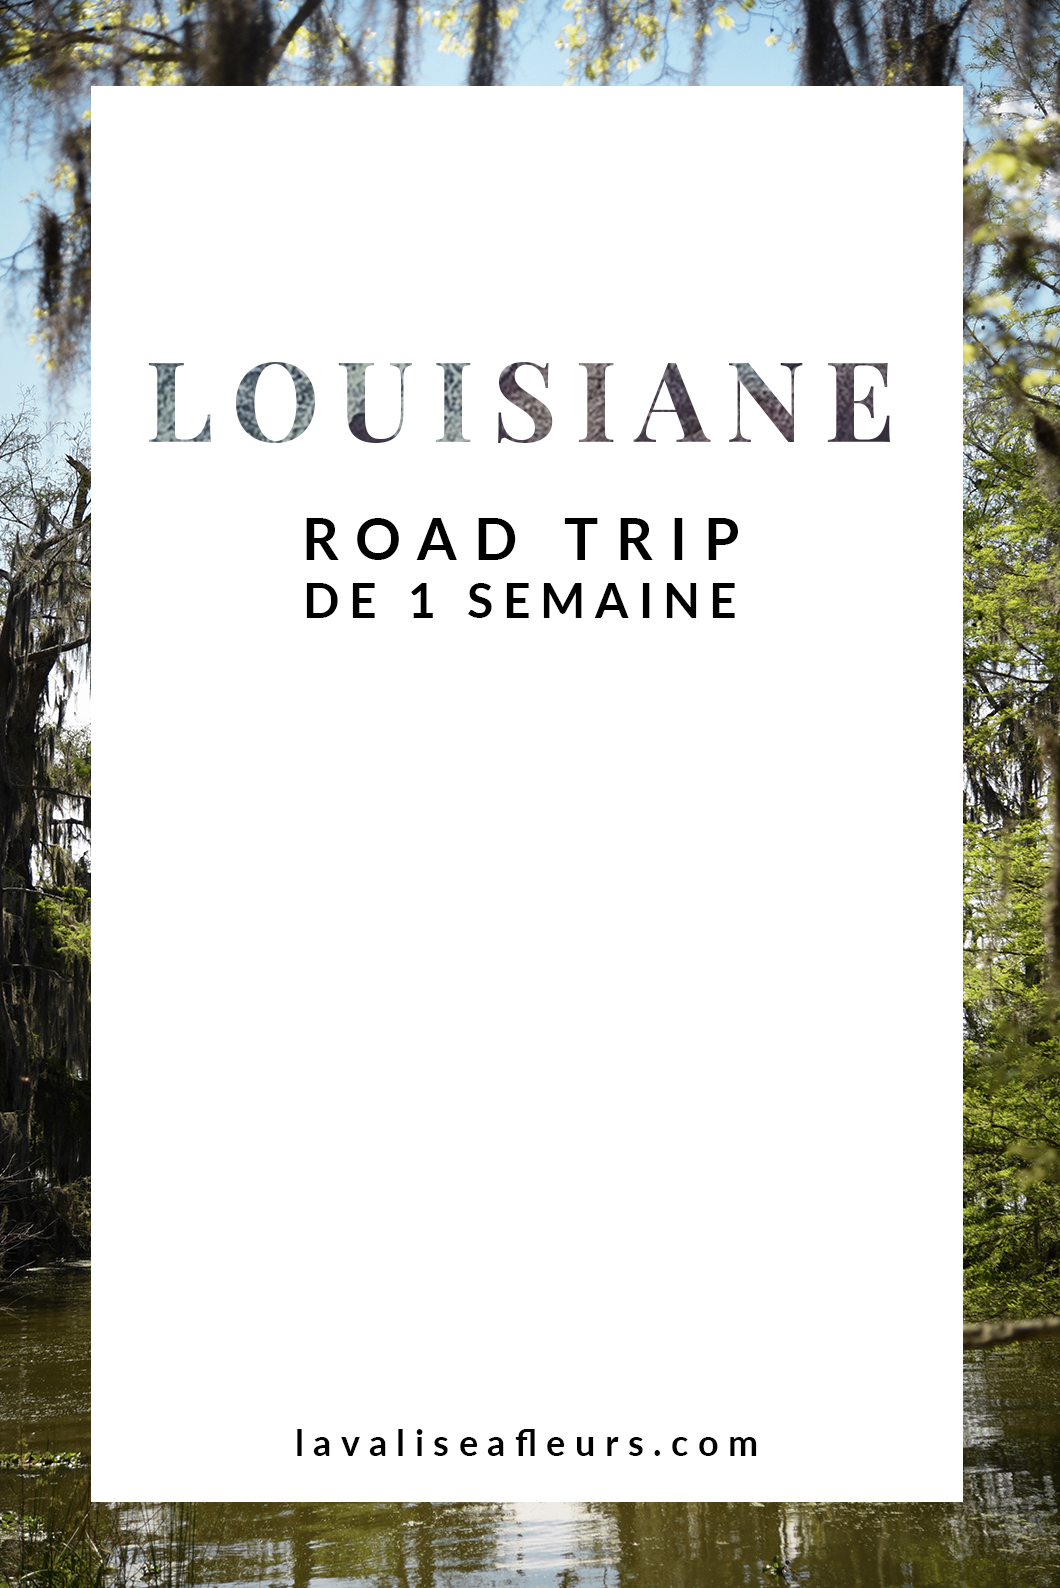 Itinéraire road trip en Louisiane